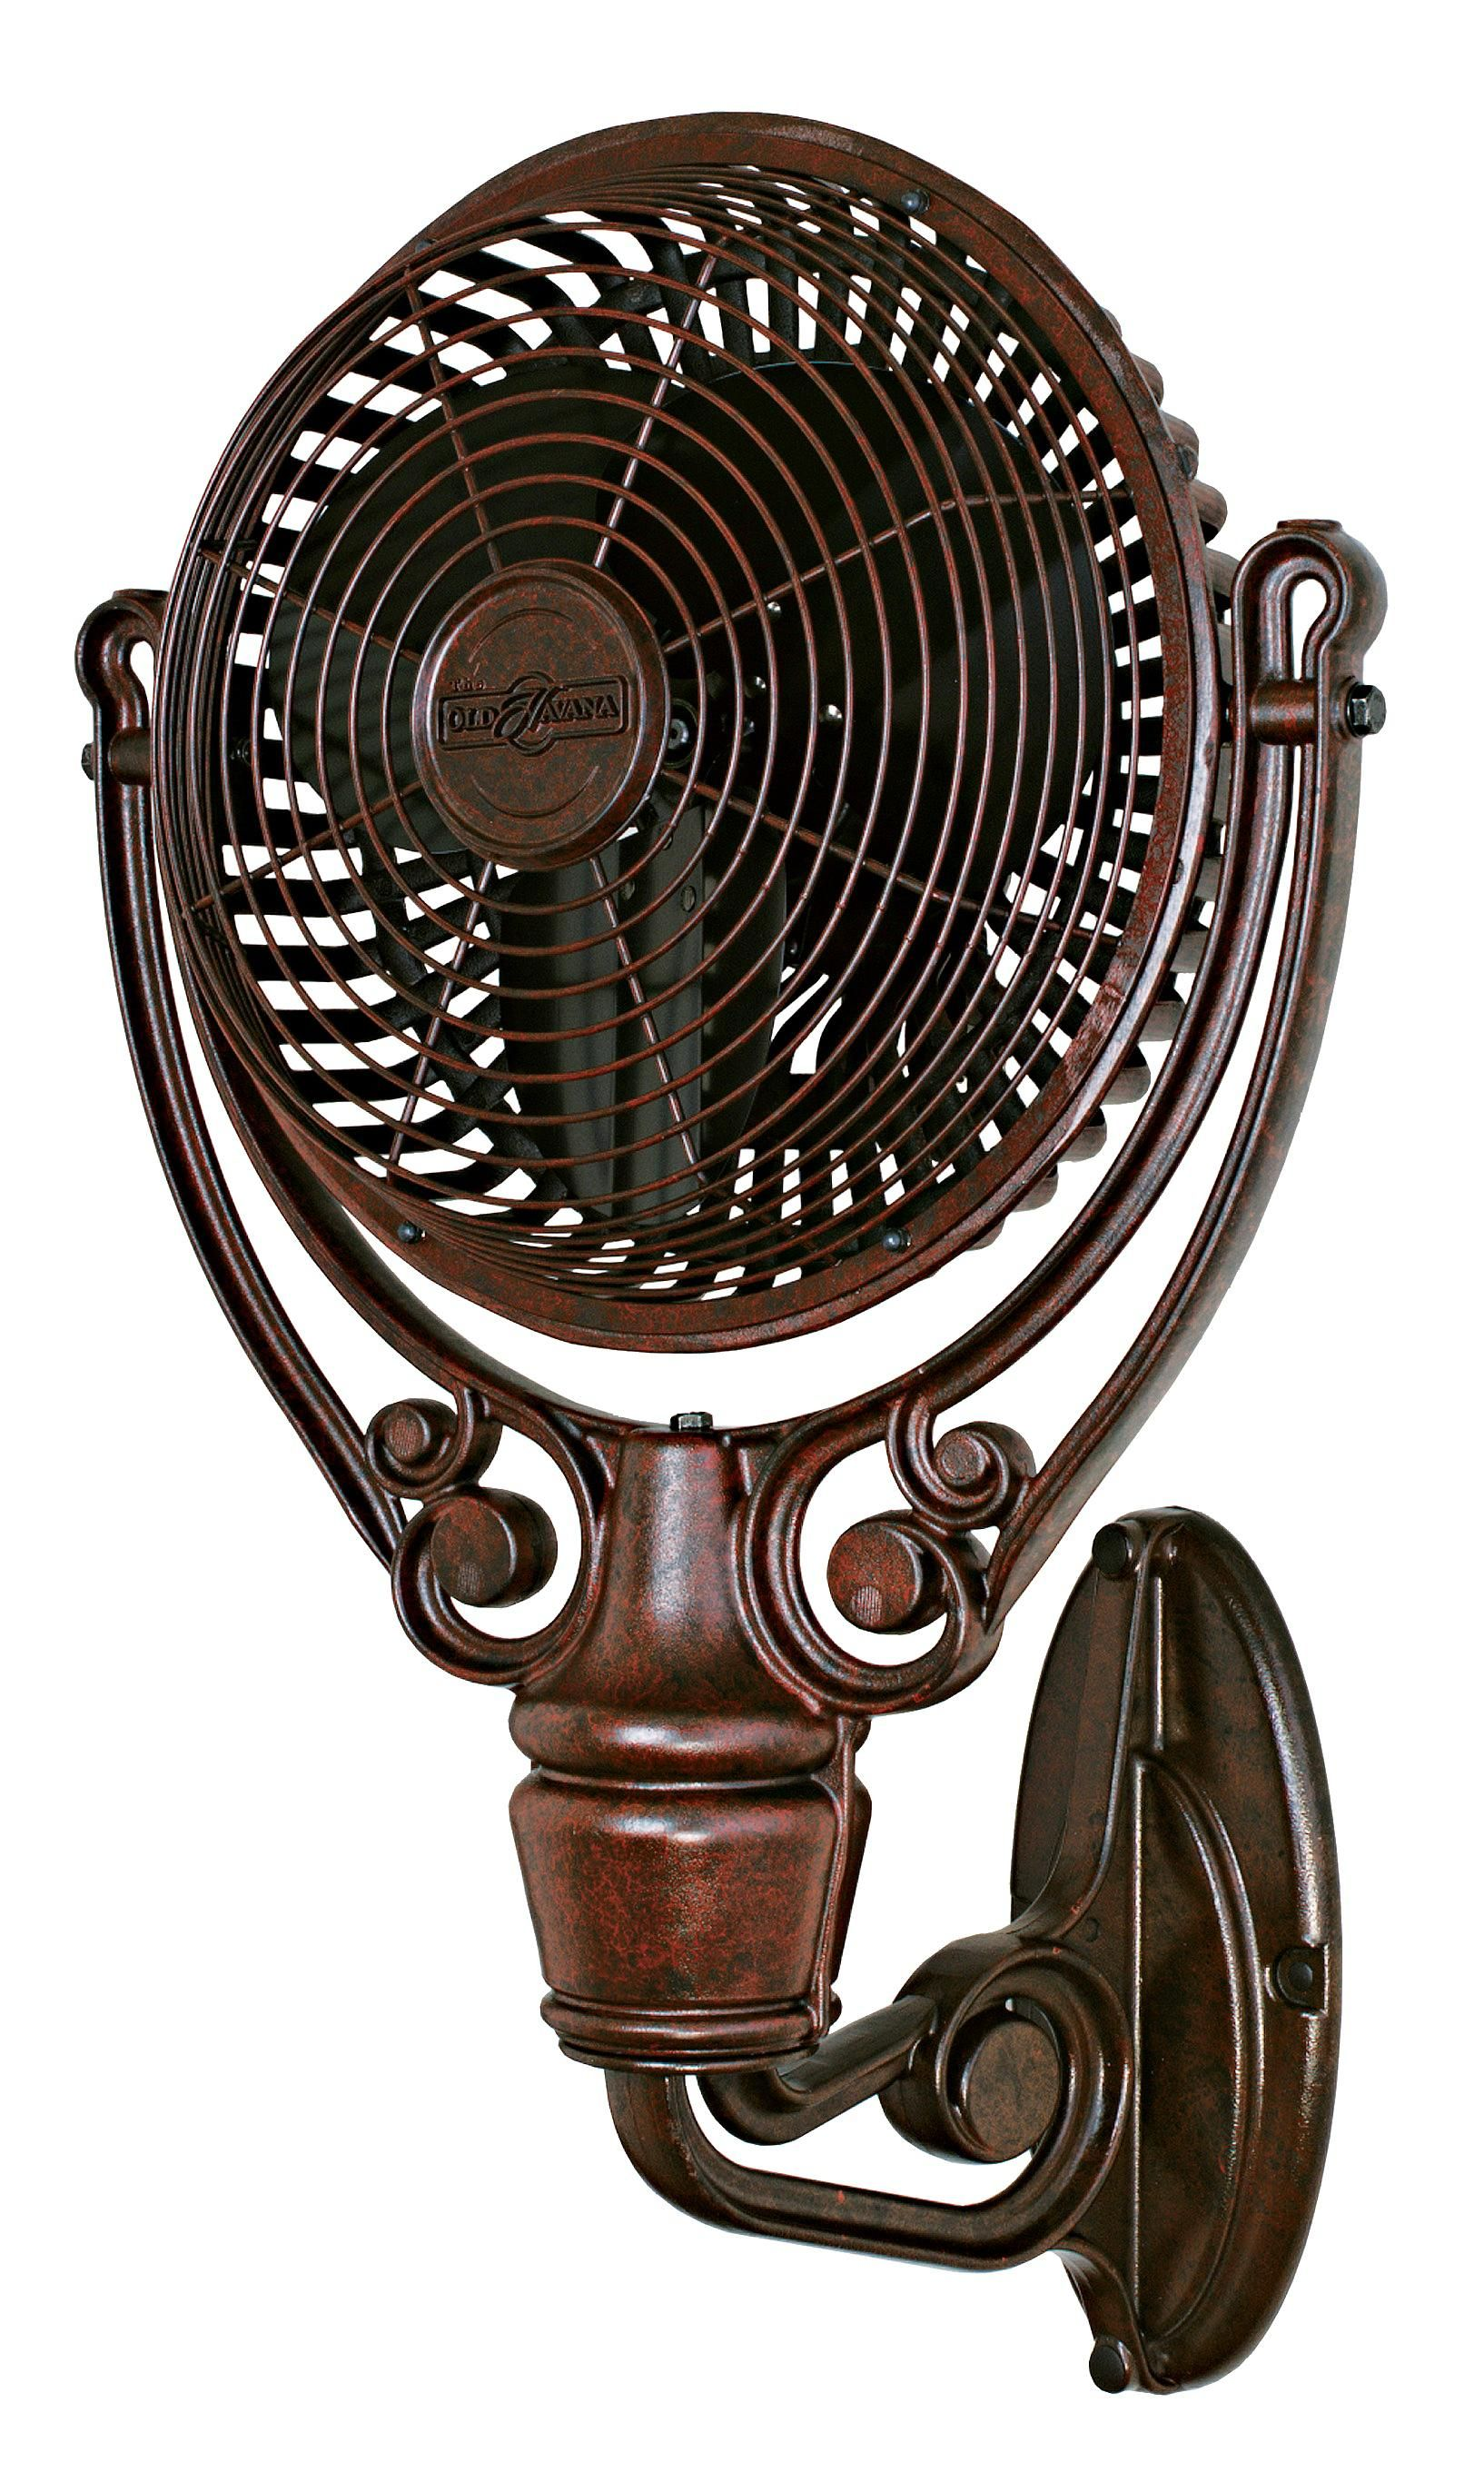 Fanimation Old Havana Rust Finish Plug In Wall Fan 25f52 Lamps Plus Wall Mounted Fan Wall Fans Wall Mount Fans